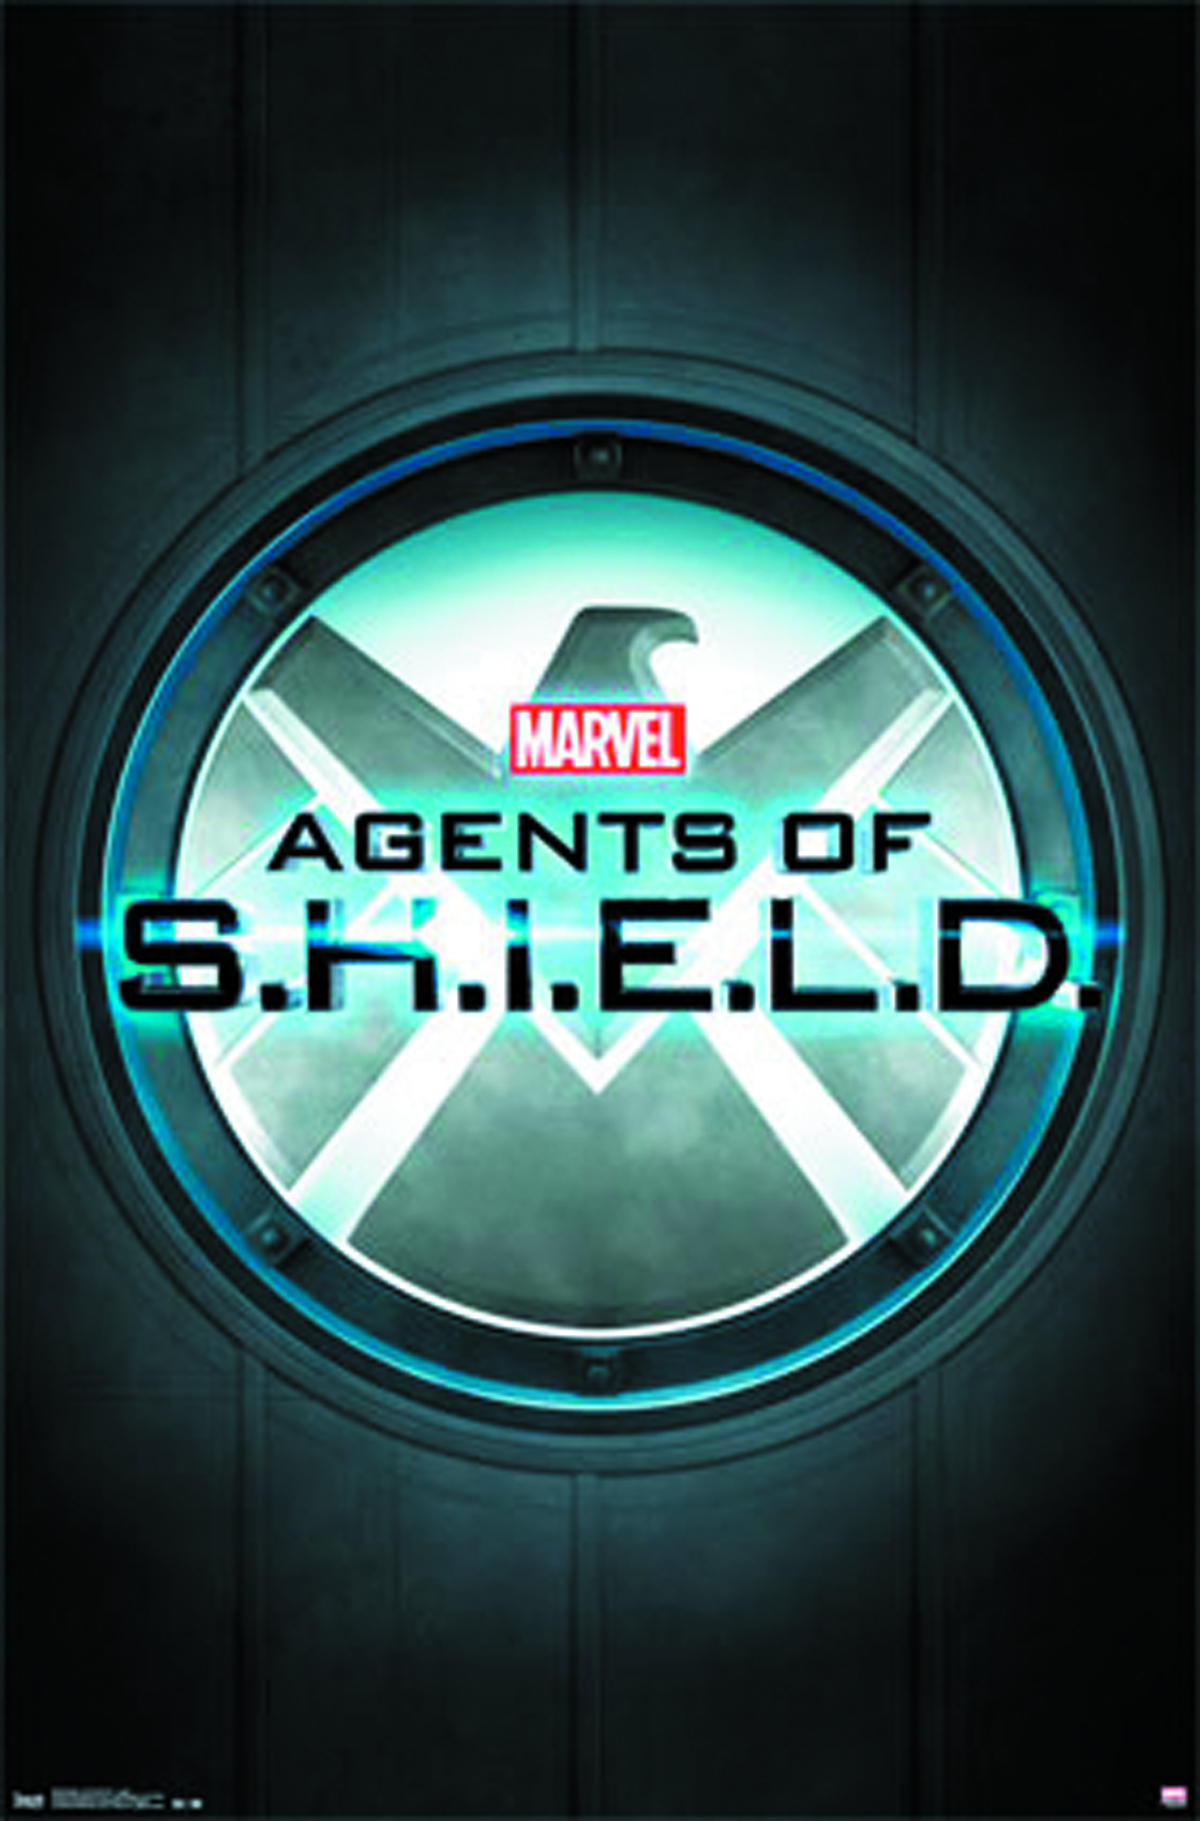 MARVEL AGENTS OF SHIELD LOGO POSTER